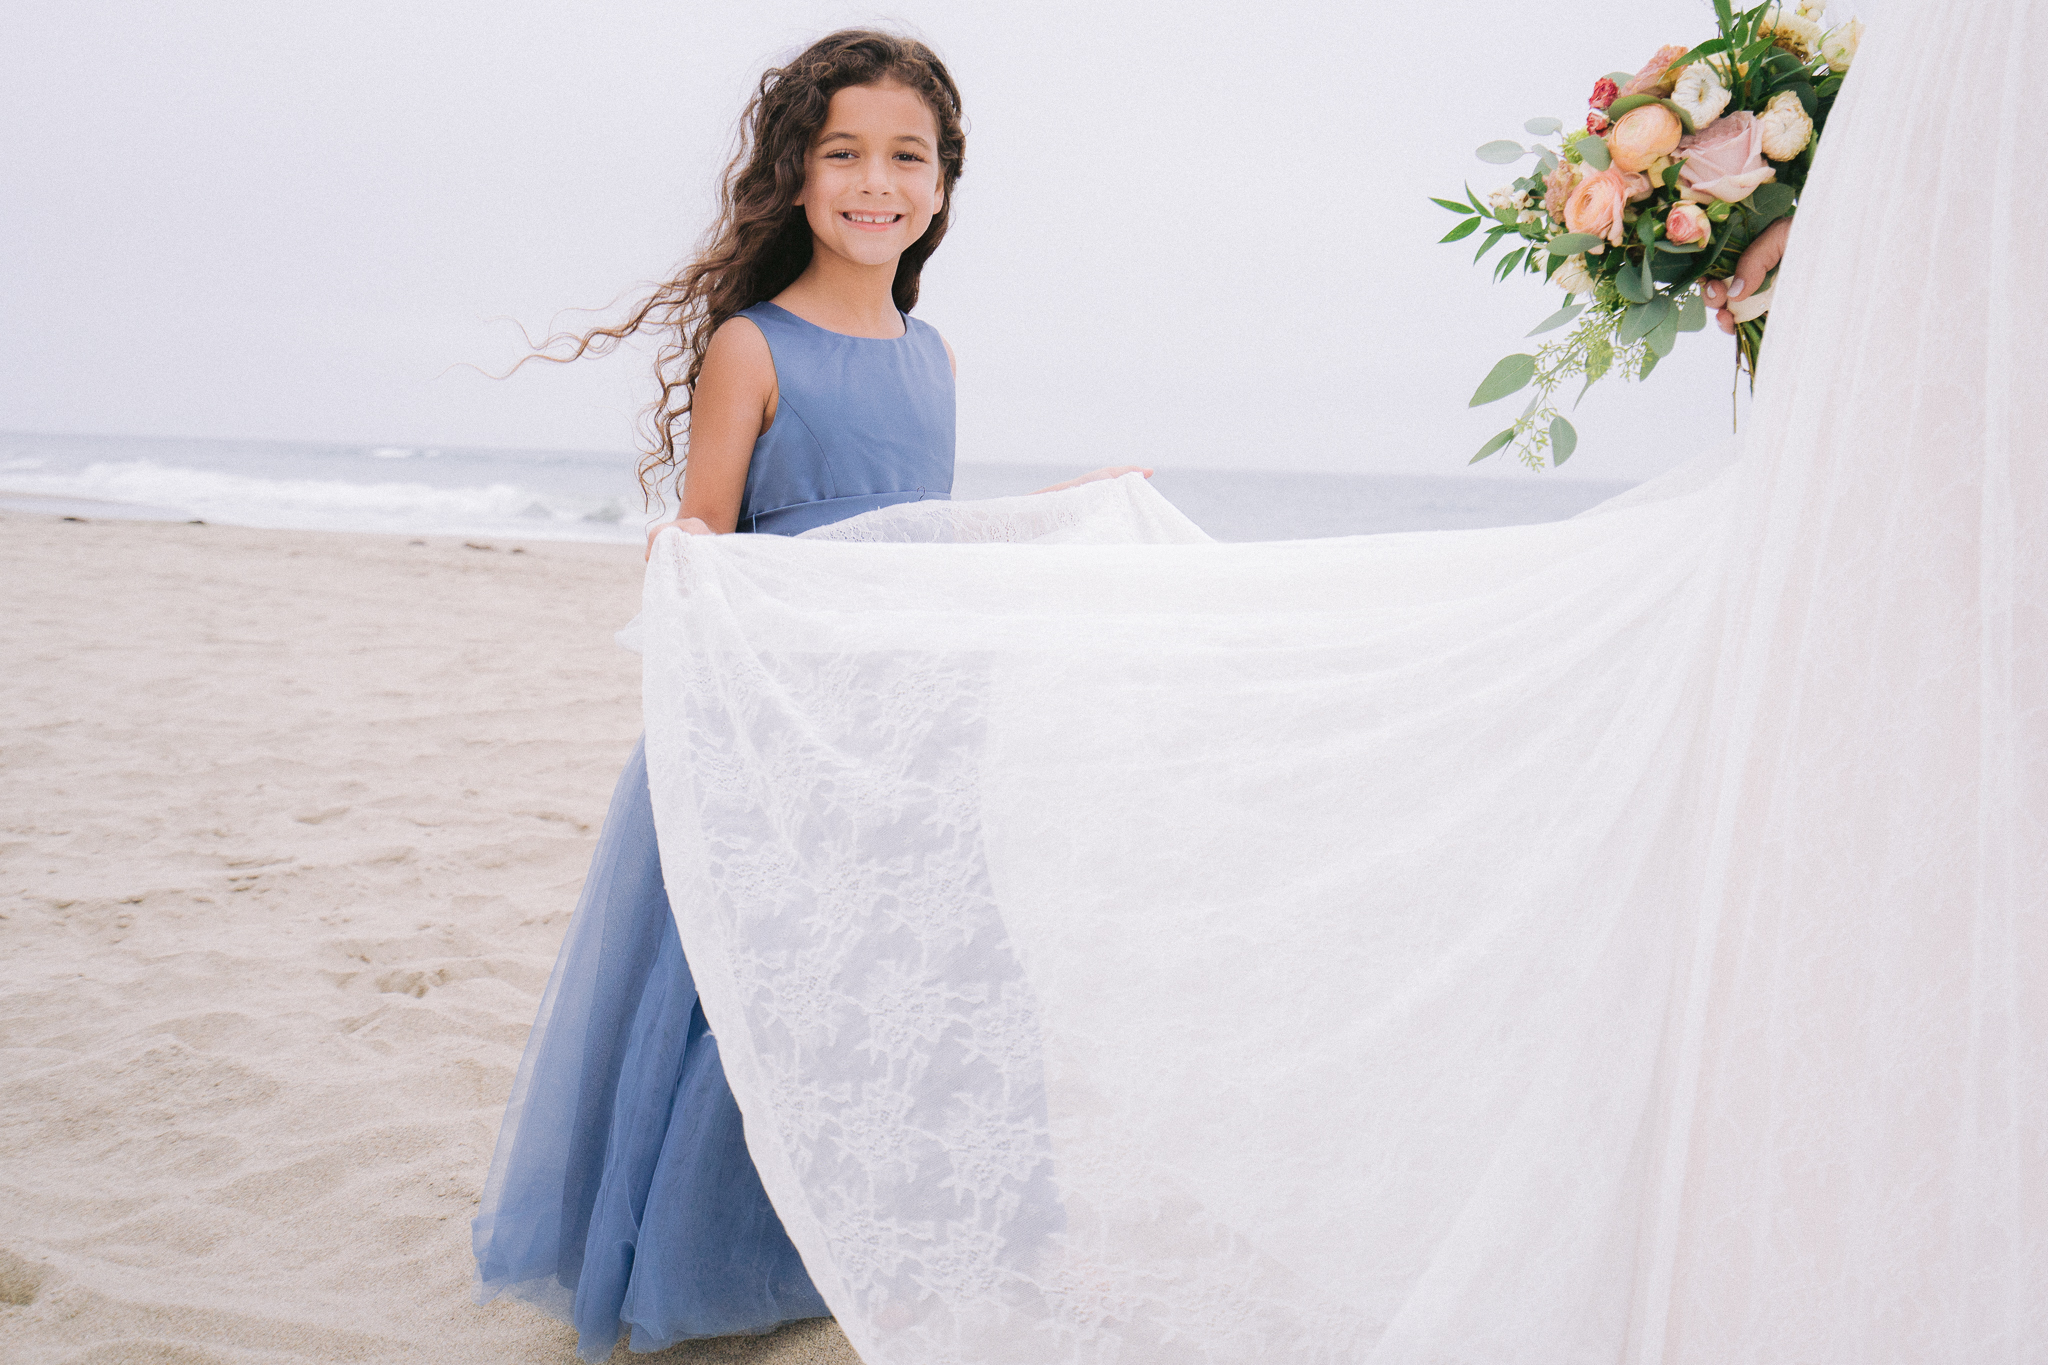 california-beach-wedding-15.jpg